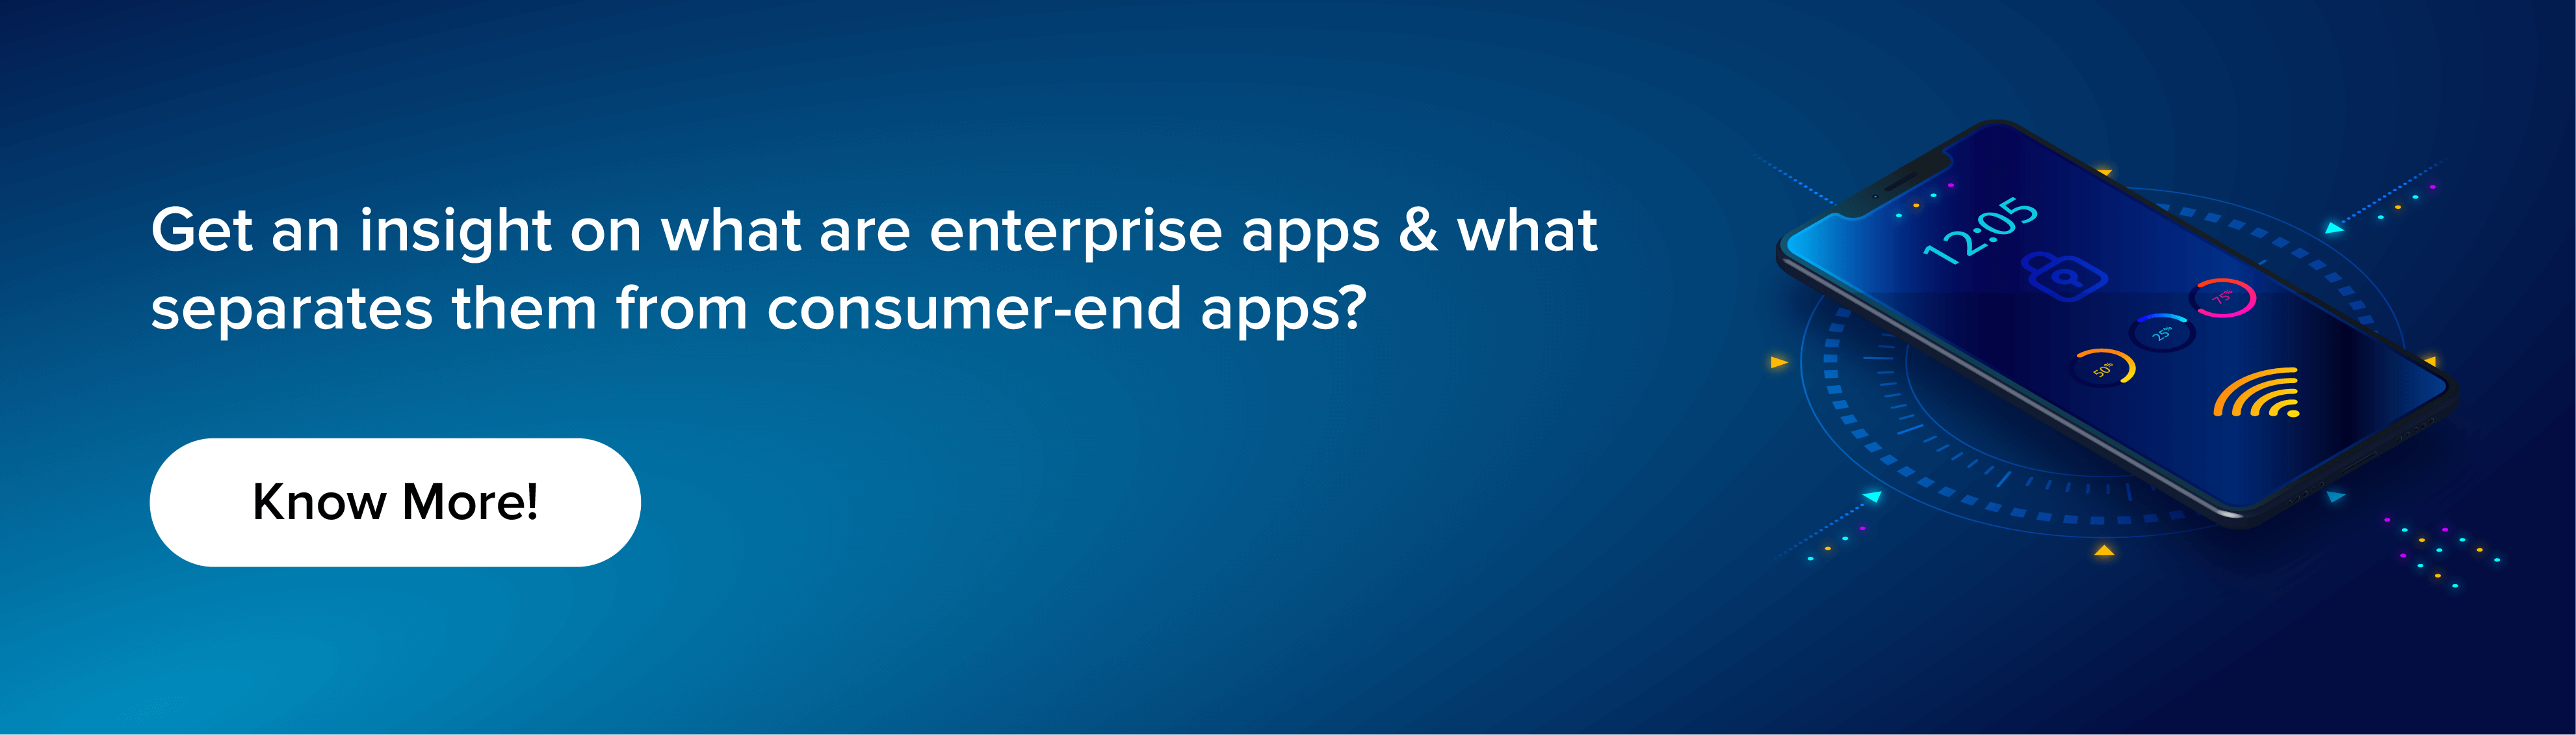 difference between enterprize app and consumer end app